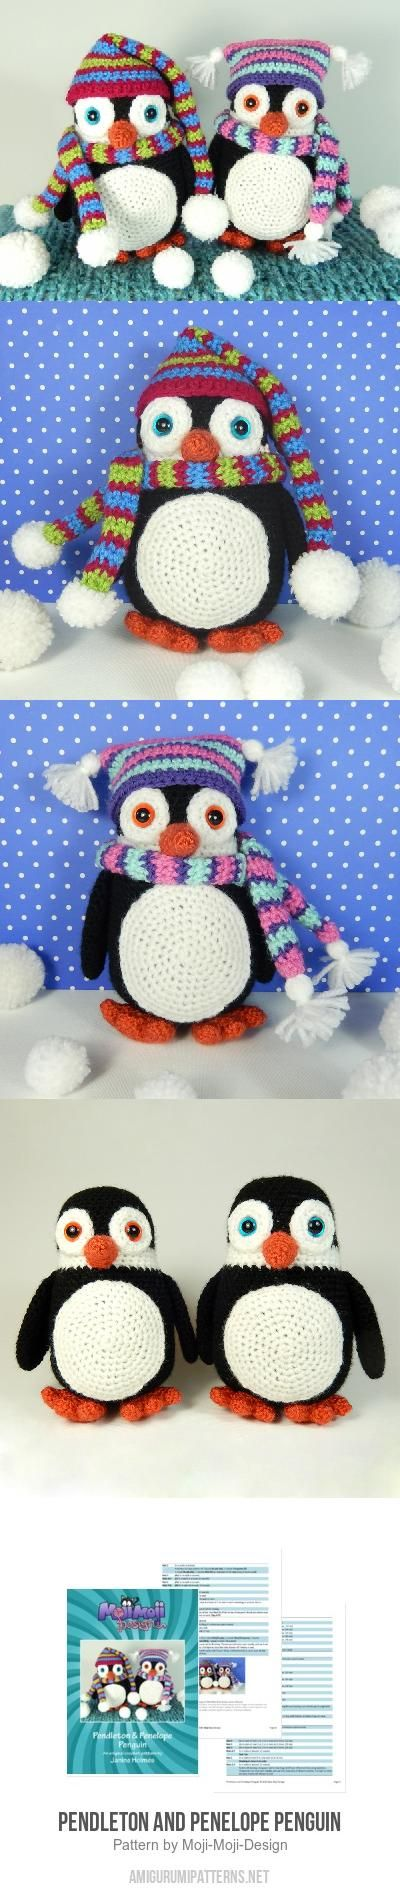 Pendleton and Penelope Penguin amigurumi pattern